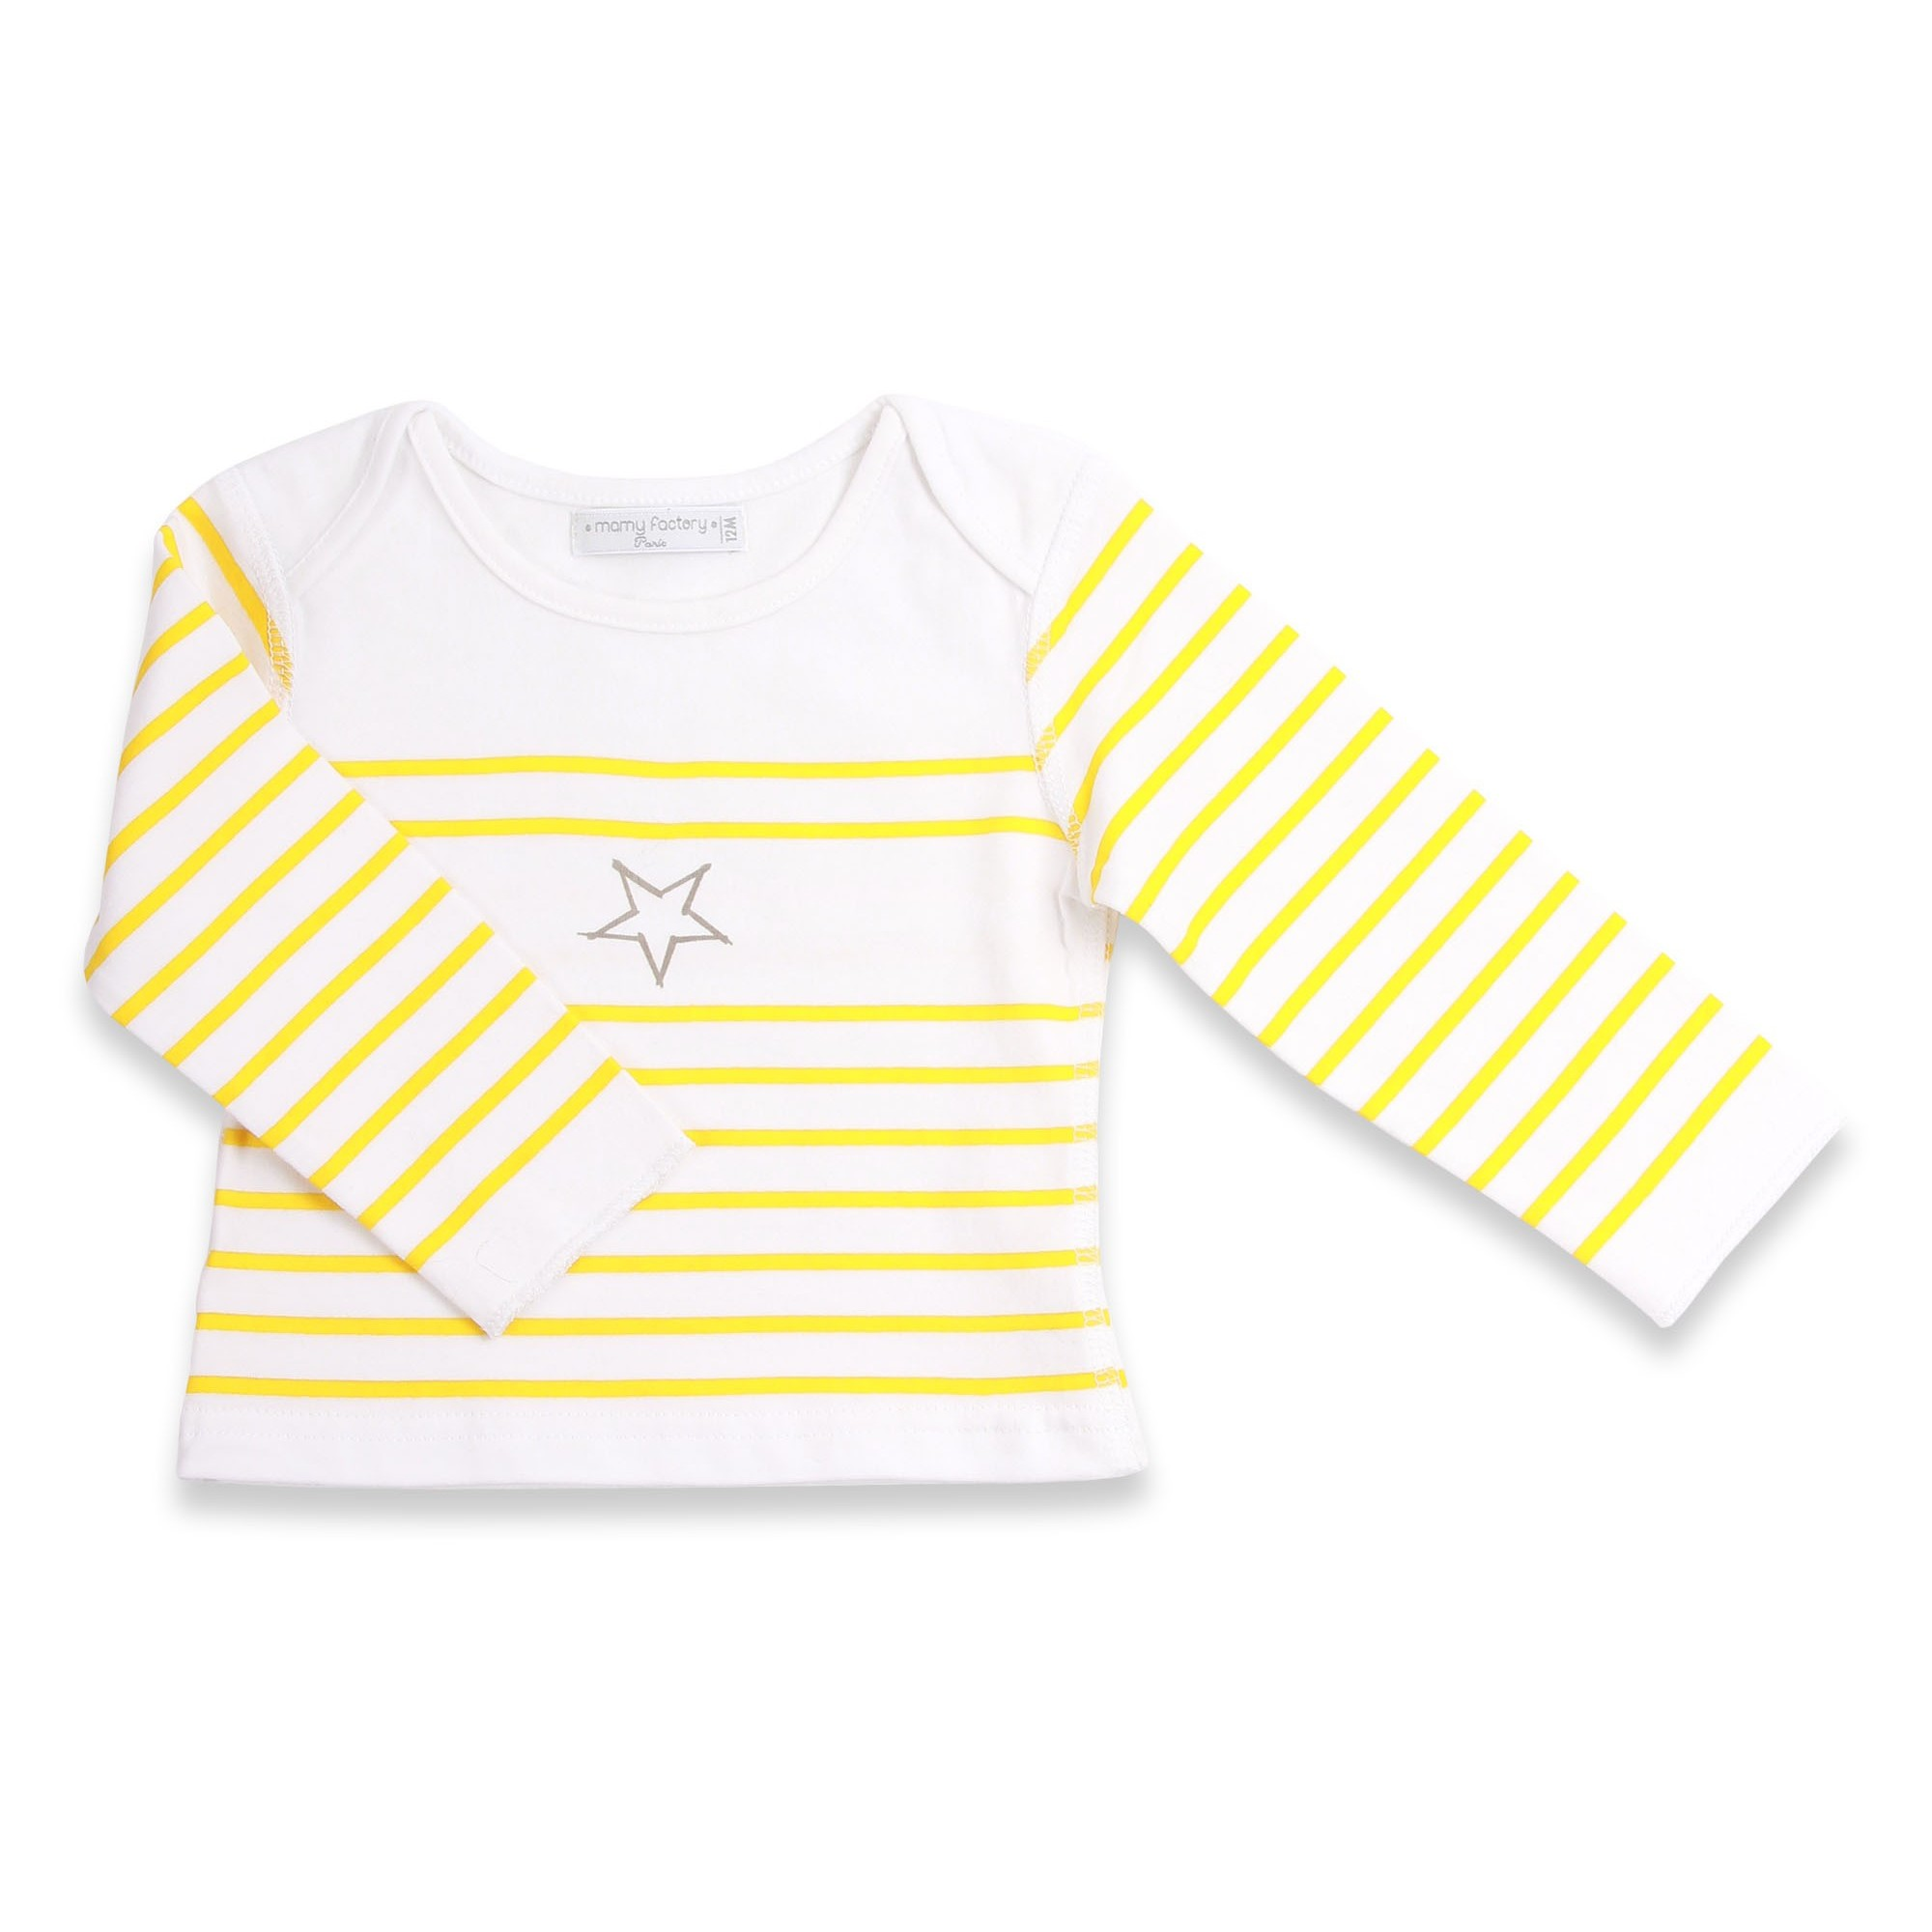 Long sleeves baby T-Shirt with yellow stripes and grey star 100% soft cotton